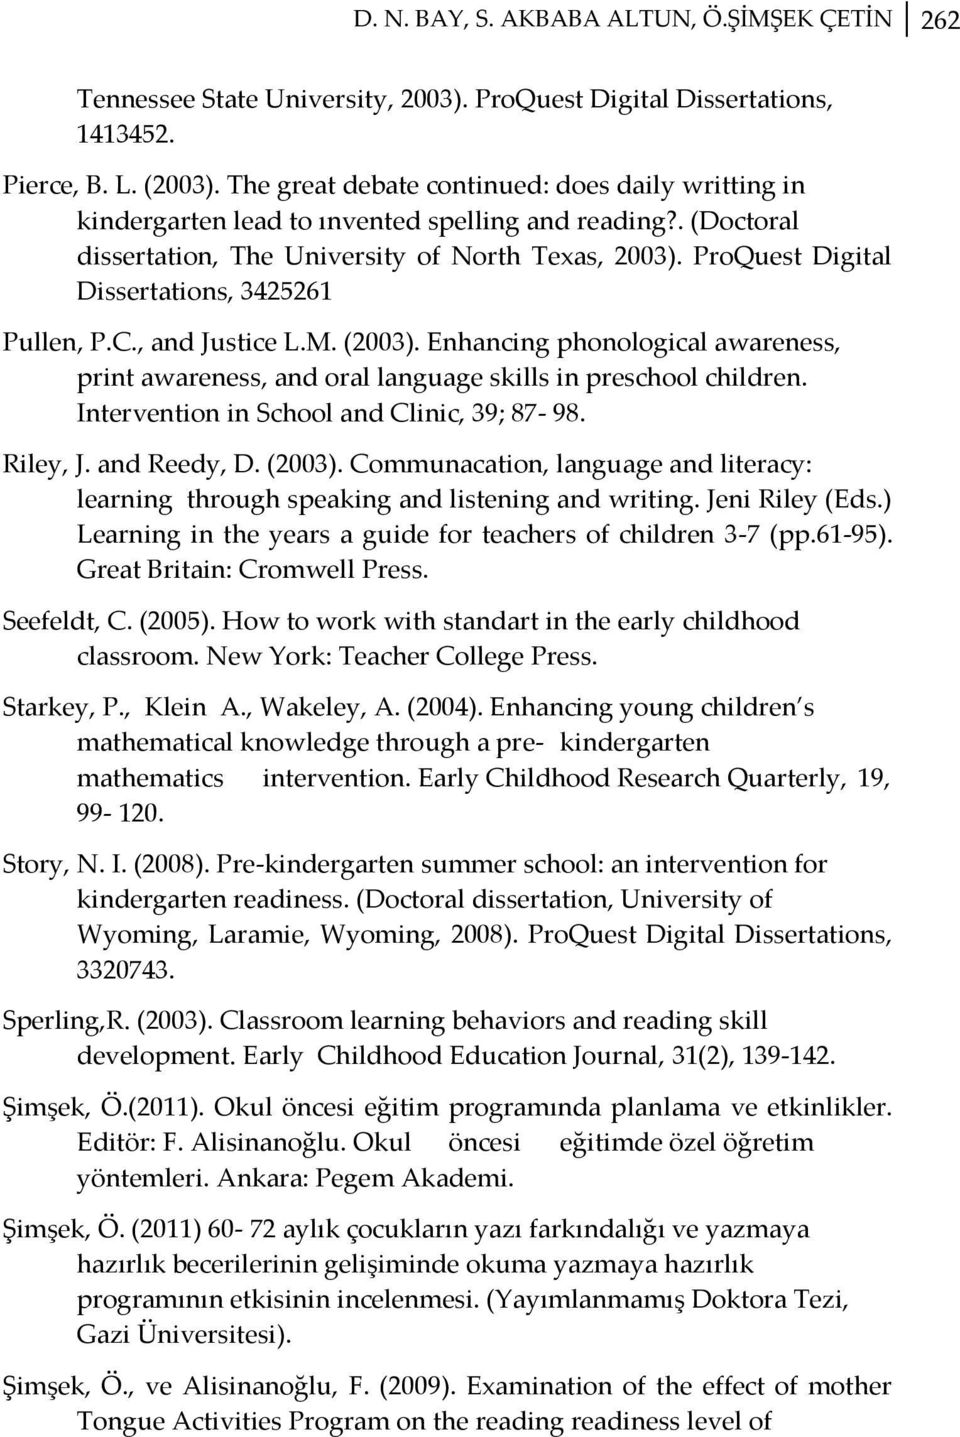 ProQuest Digital Dissertations, 3425261 Pullen, P.C., and Justice L.M. (2003). Enhancing phonological awareness, print awareness, and oral language skills in preschool children.